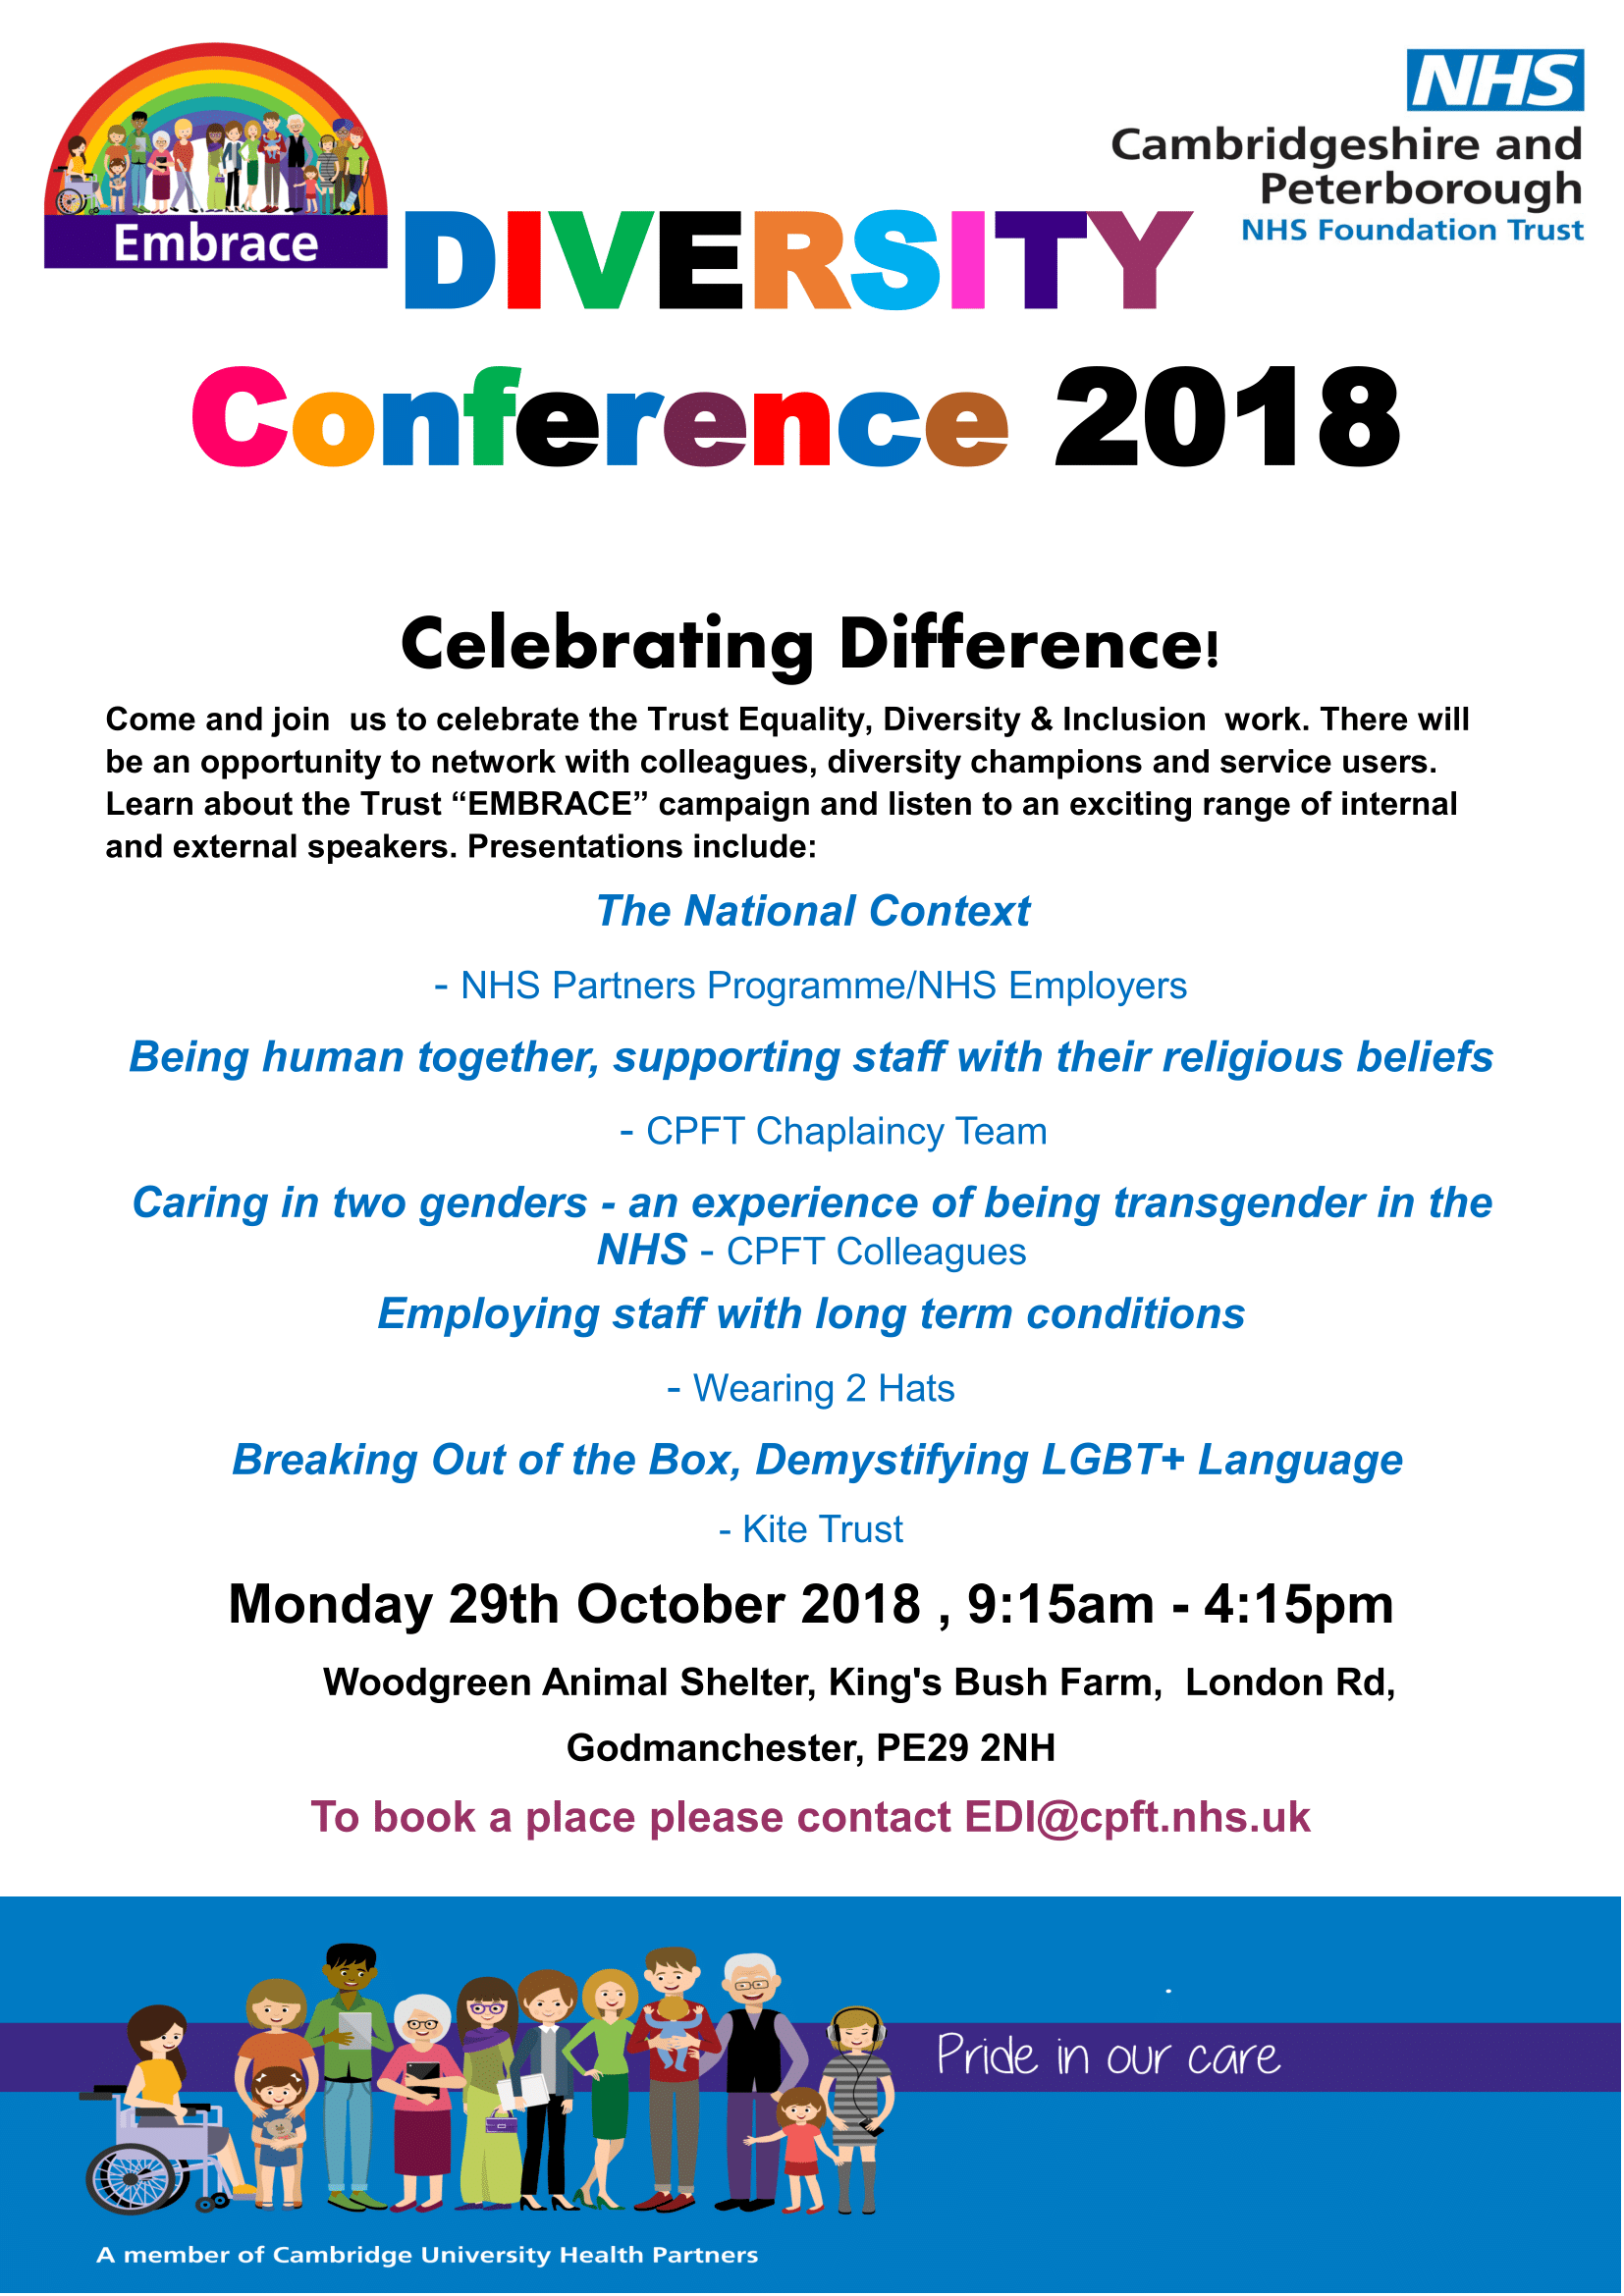 Diversity Conference 2018 - Poster